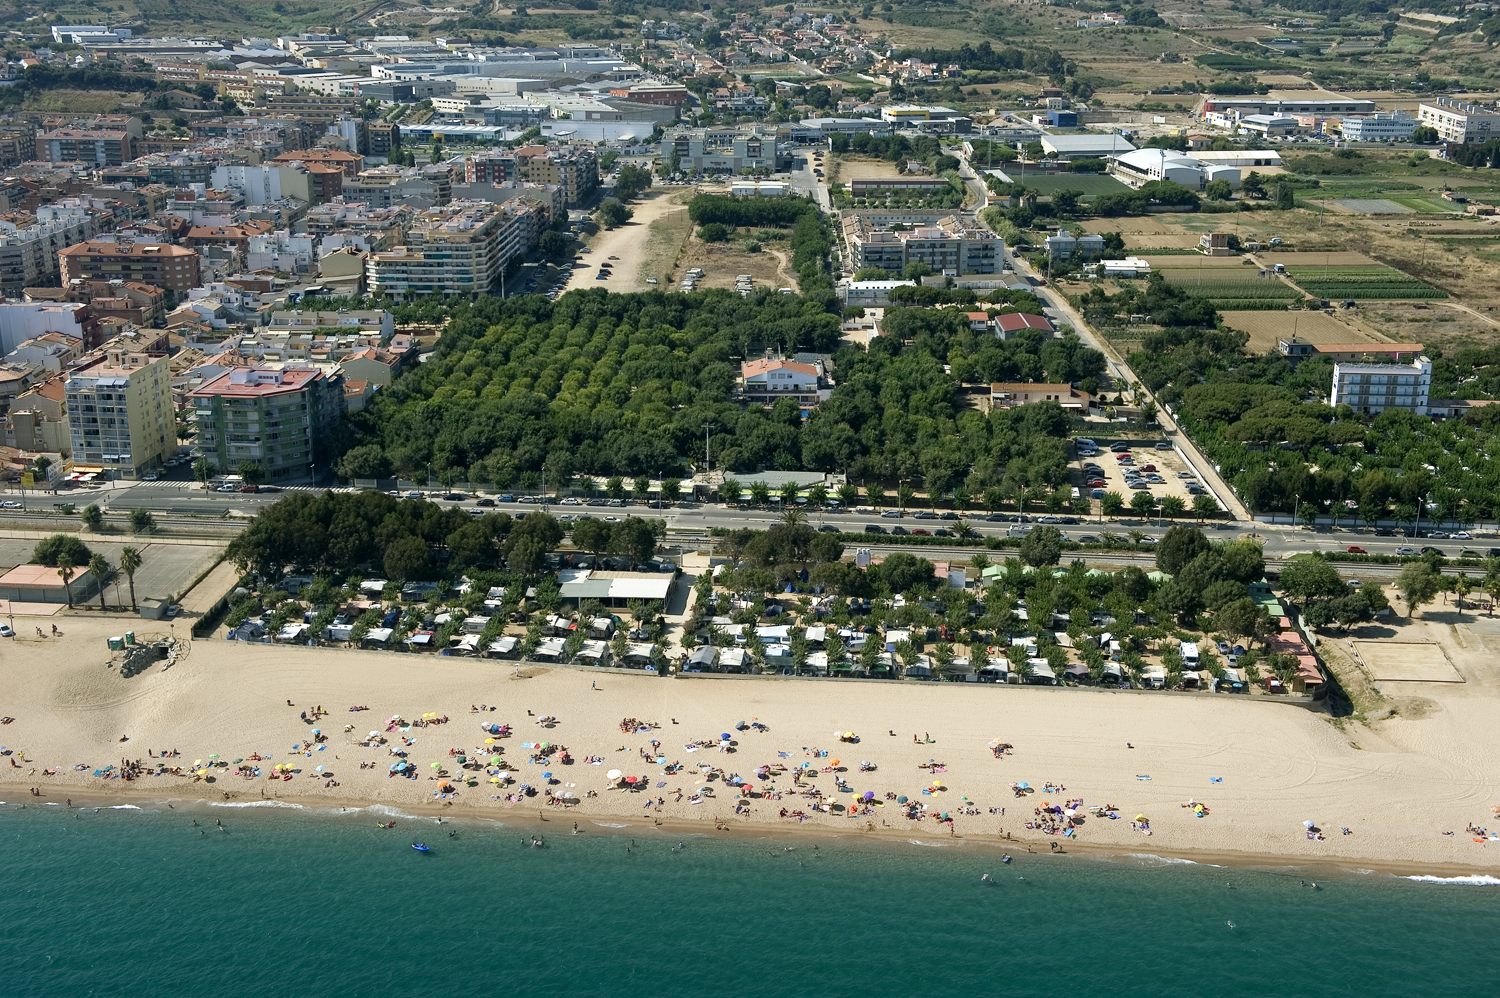 Camping - Pineda de Mar - Costa Brava - Caballo de Mar